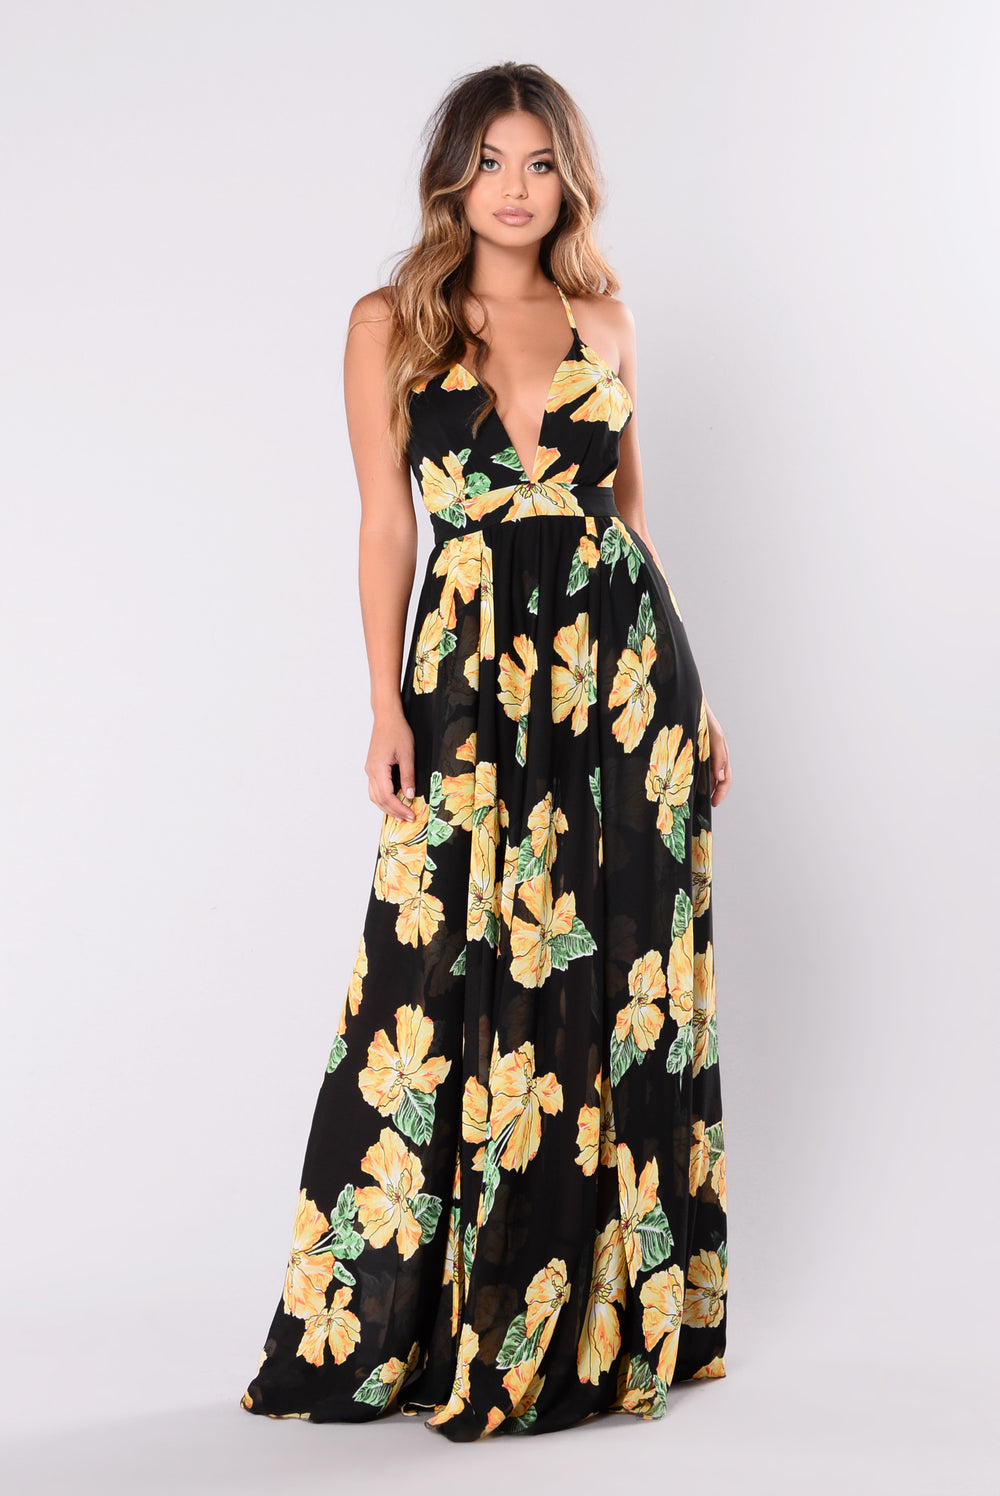 The maxi skirt features a high side asymmetrical slit to show off your glowing gams! The all over floral pattern is complemented with a dark background. Dress is composed of lightweight woven fabric that offers a relaxed fit with minimal stretch.